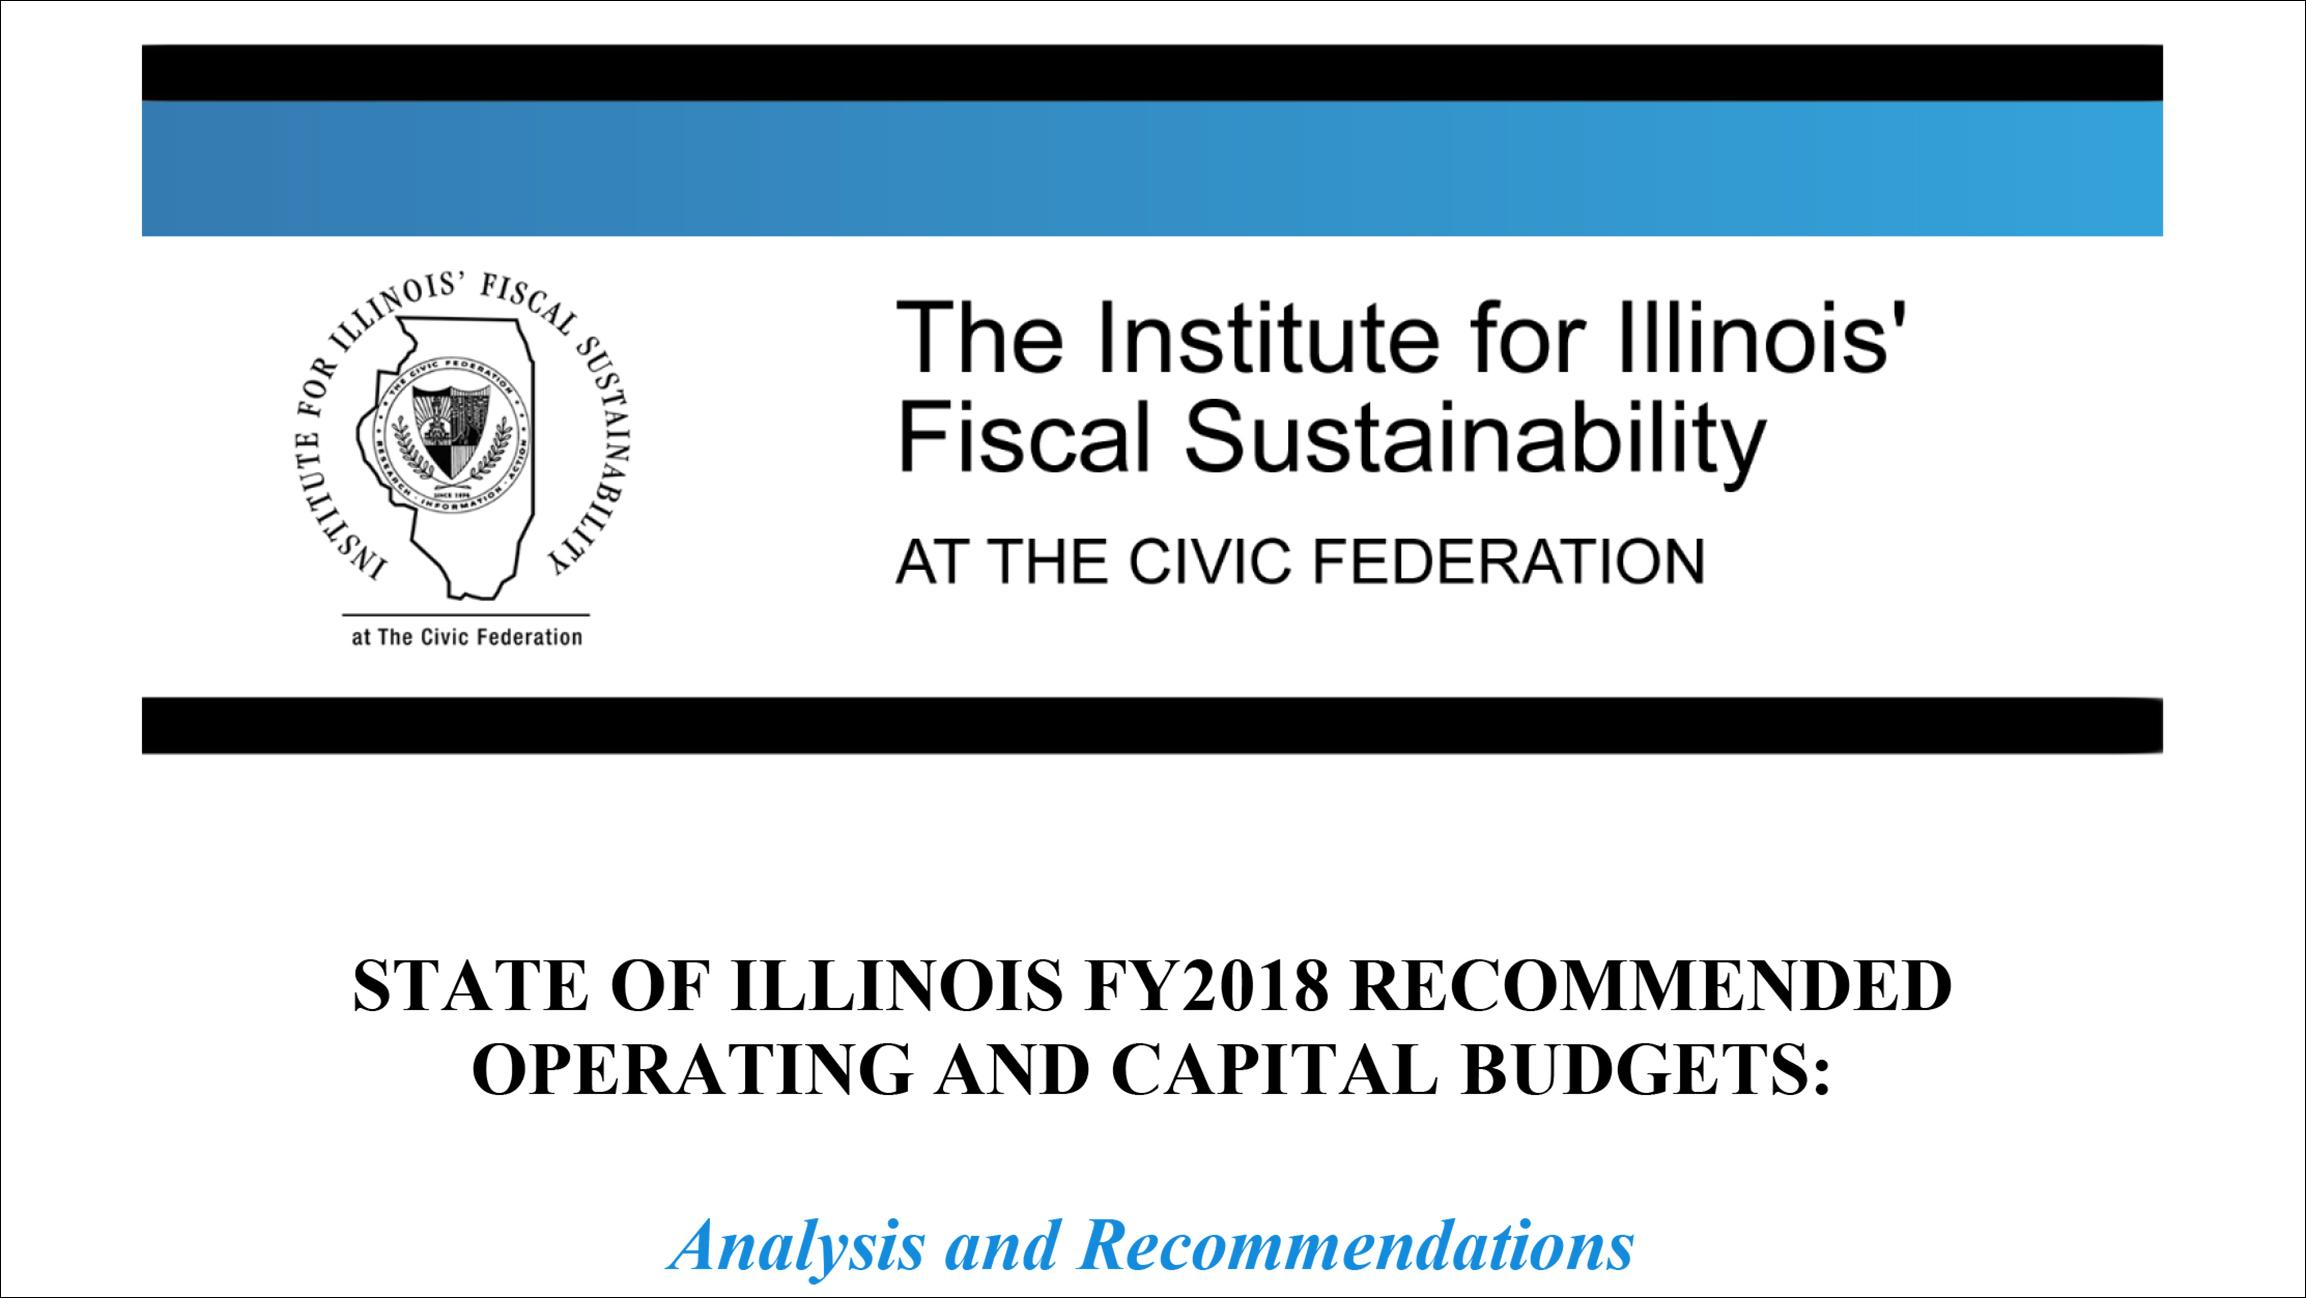 Document: Read the Civic Federation report